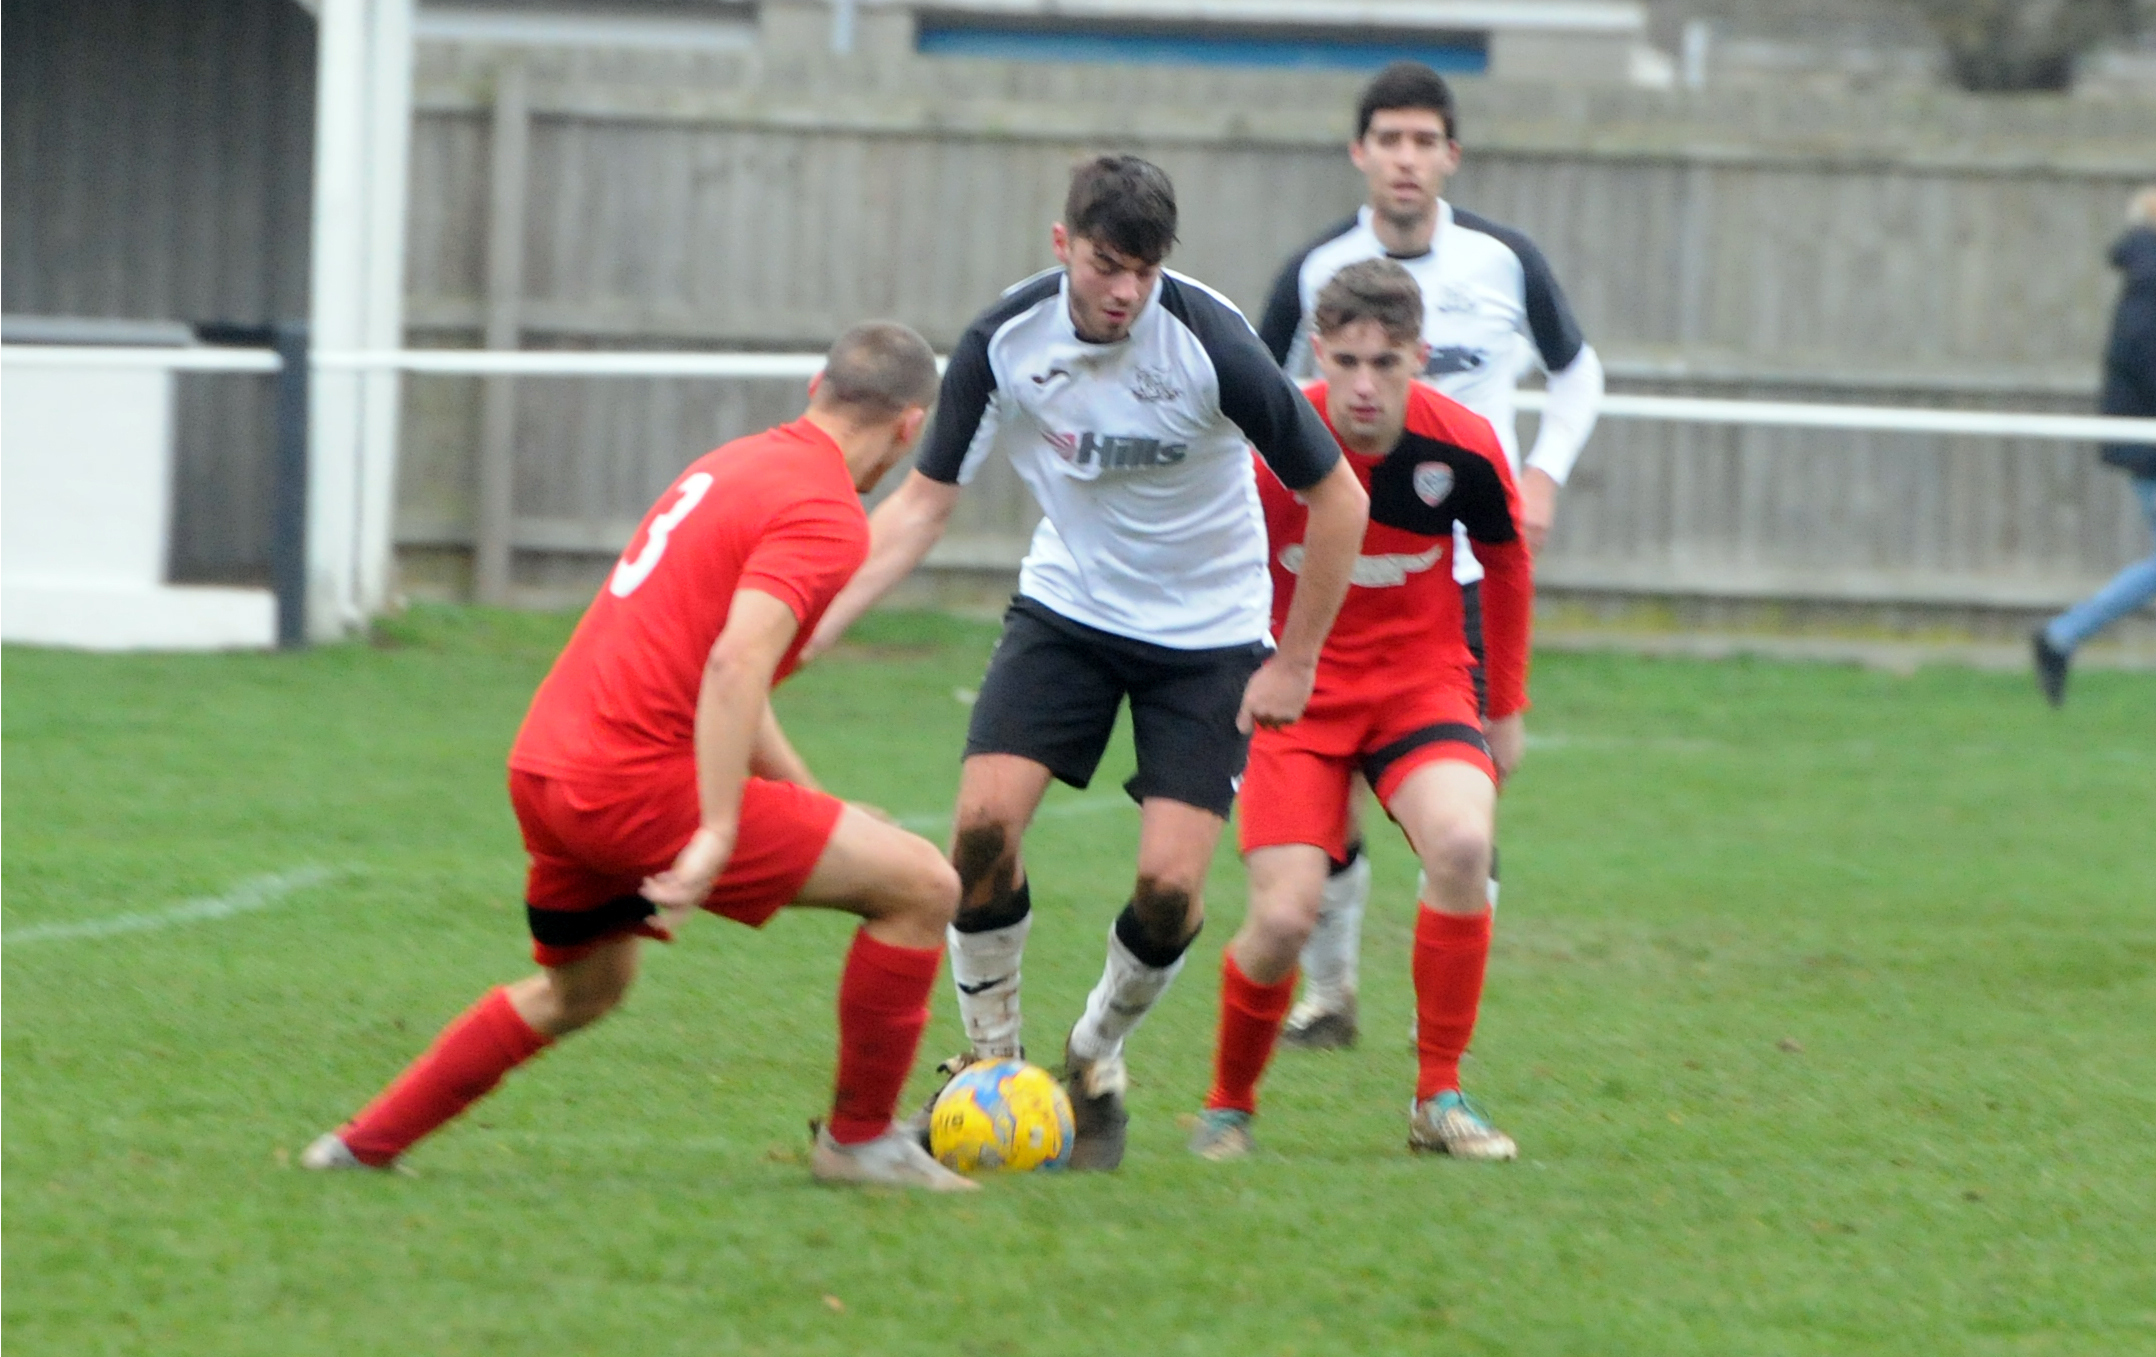 Bill Boakes (white) on the ball for Calne Town during their 5-0 win at home to Radstock Town on Saturday. Photo: Siobhan Boyle SMB2611/1